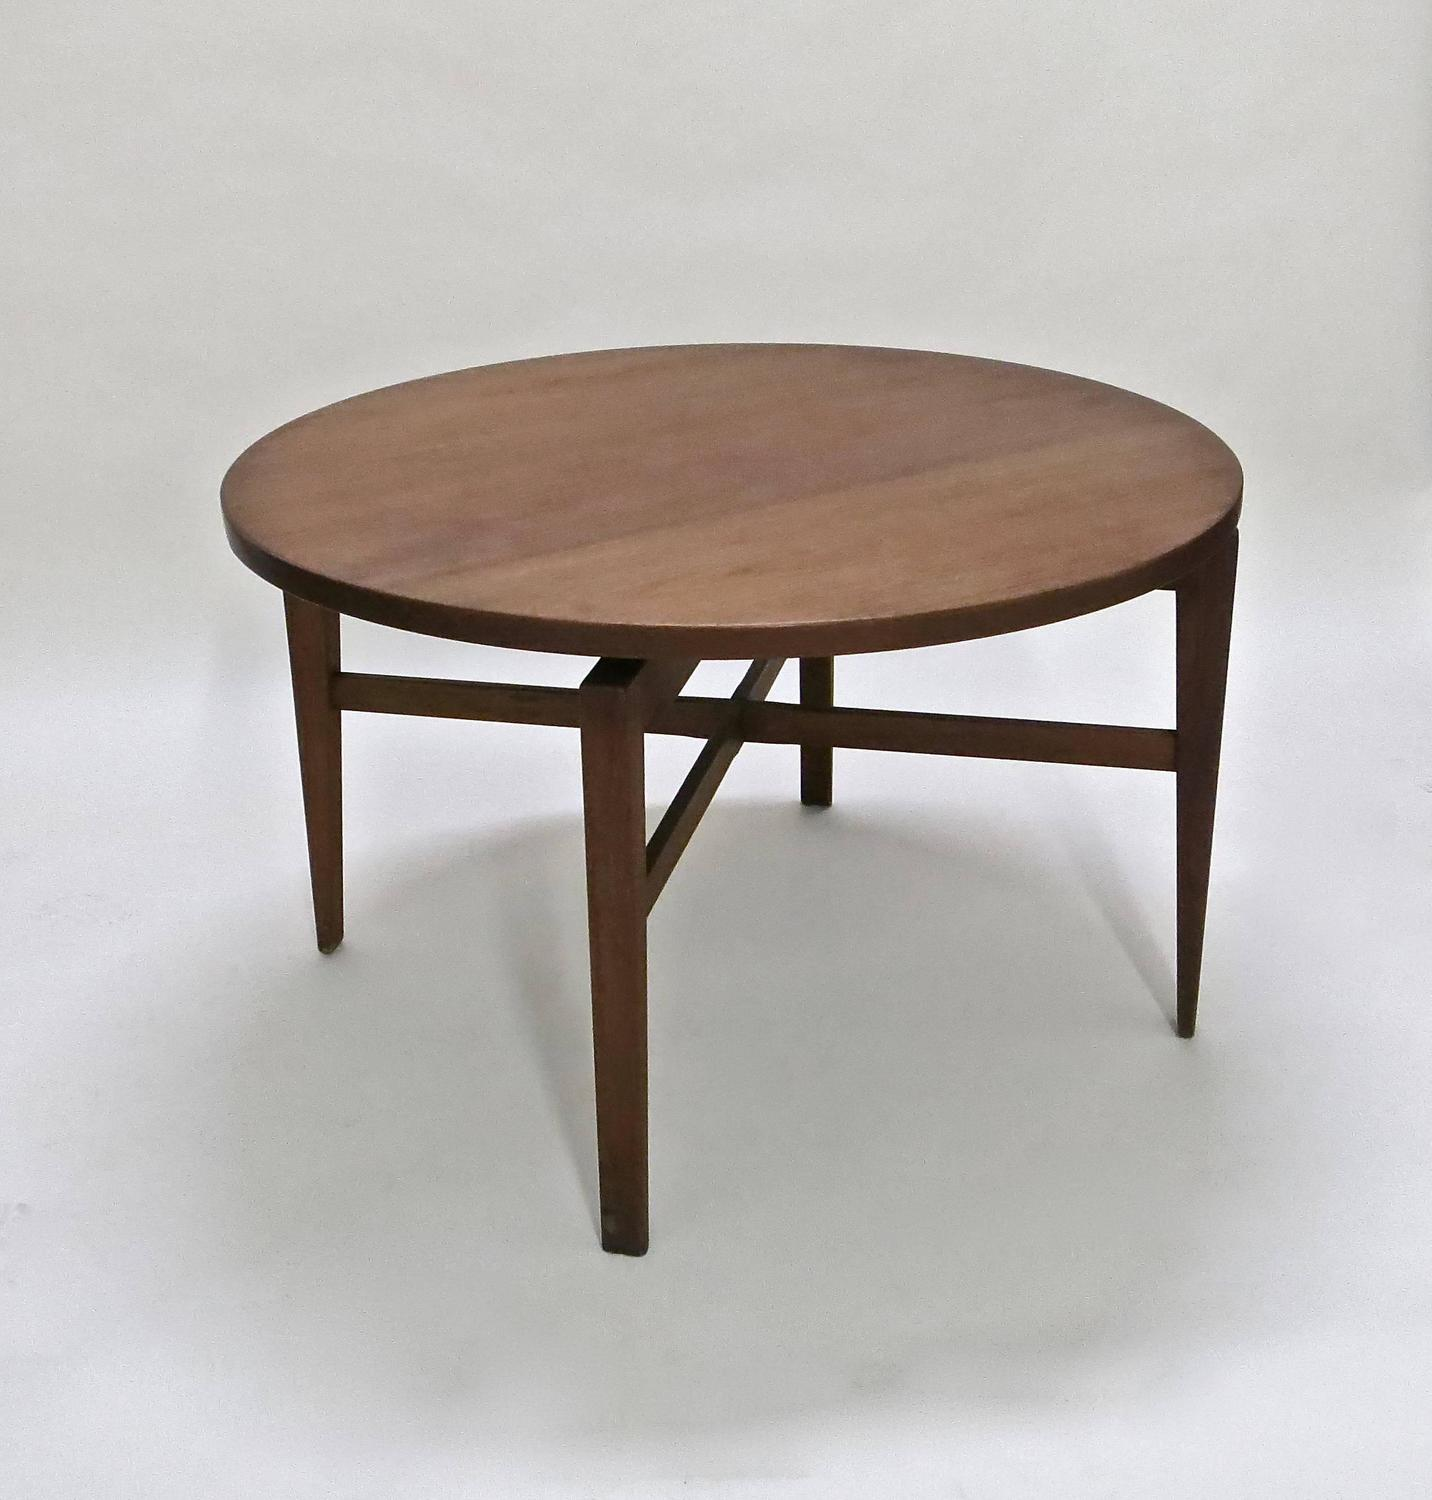 rotating table by jens risom circa 1950 original manufacturers label usa at 1stdibs. Black Bedroom Furniture Sets. Home Design Ideas